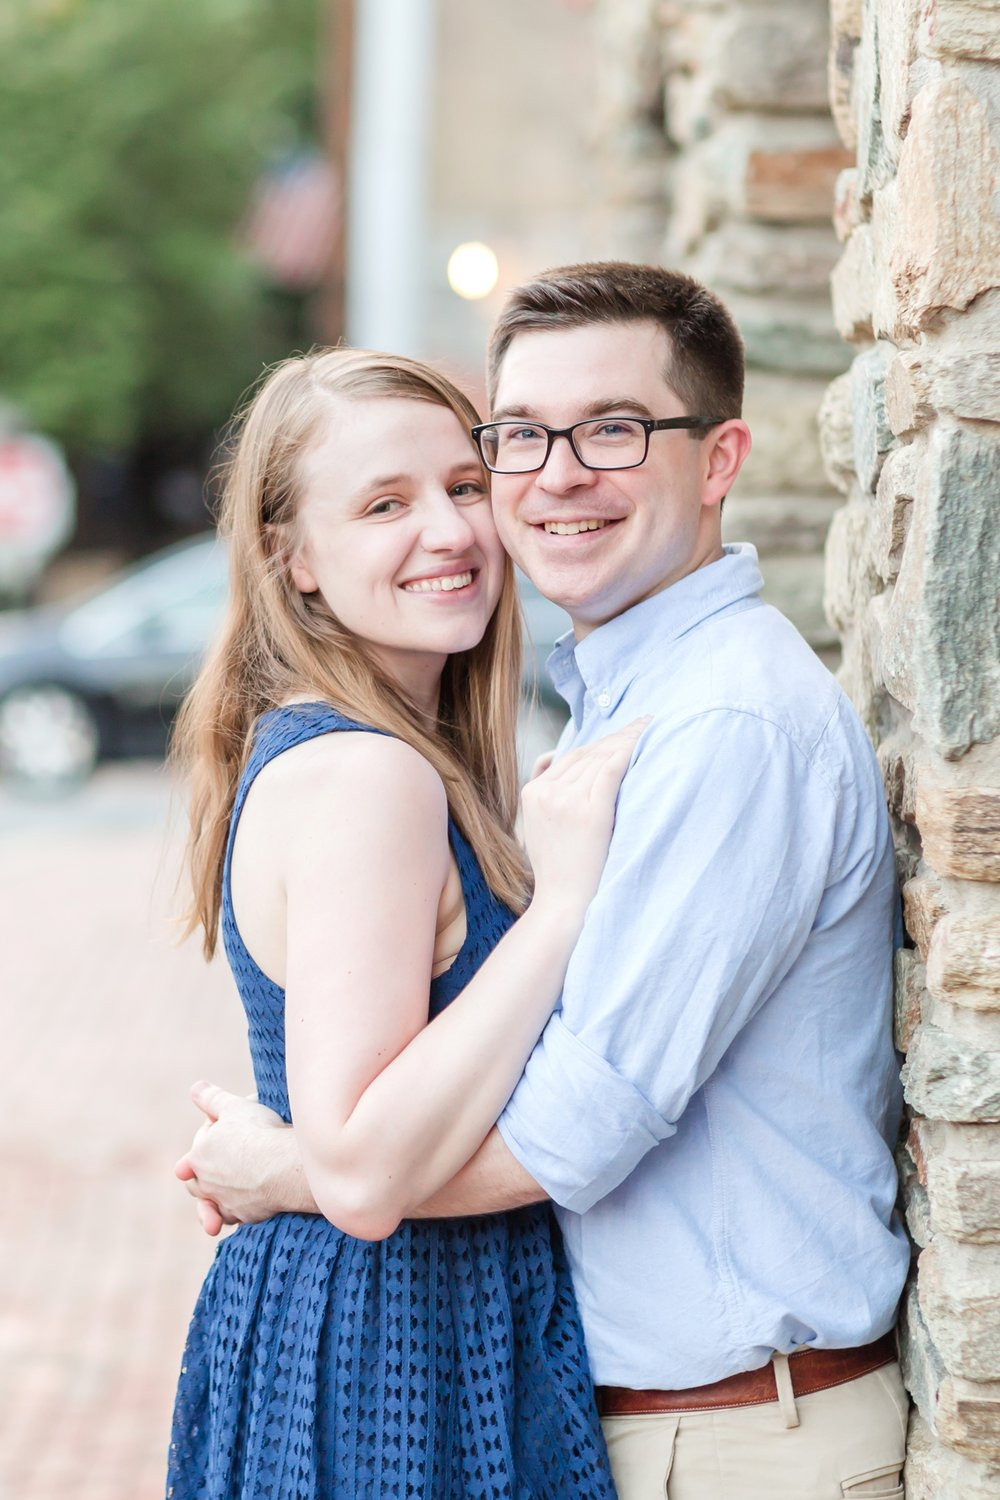 Lindy & Chris Engagement-177_virginia-engagement-photographer-old-town-alexandria-engagement-anna-grace-photography-photo.jpg